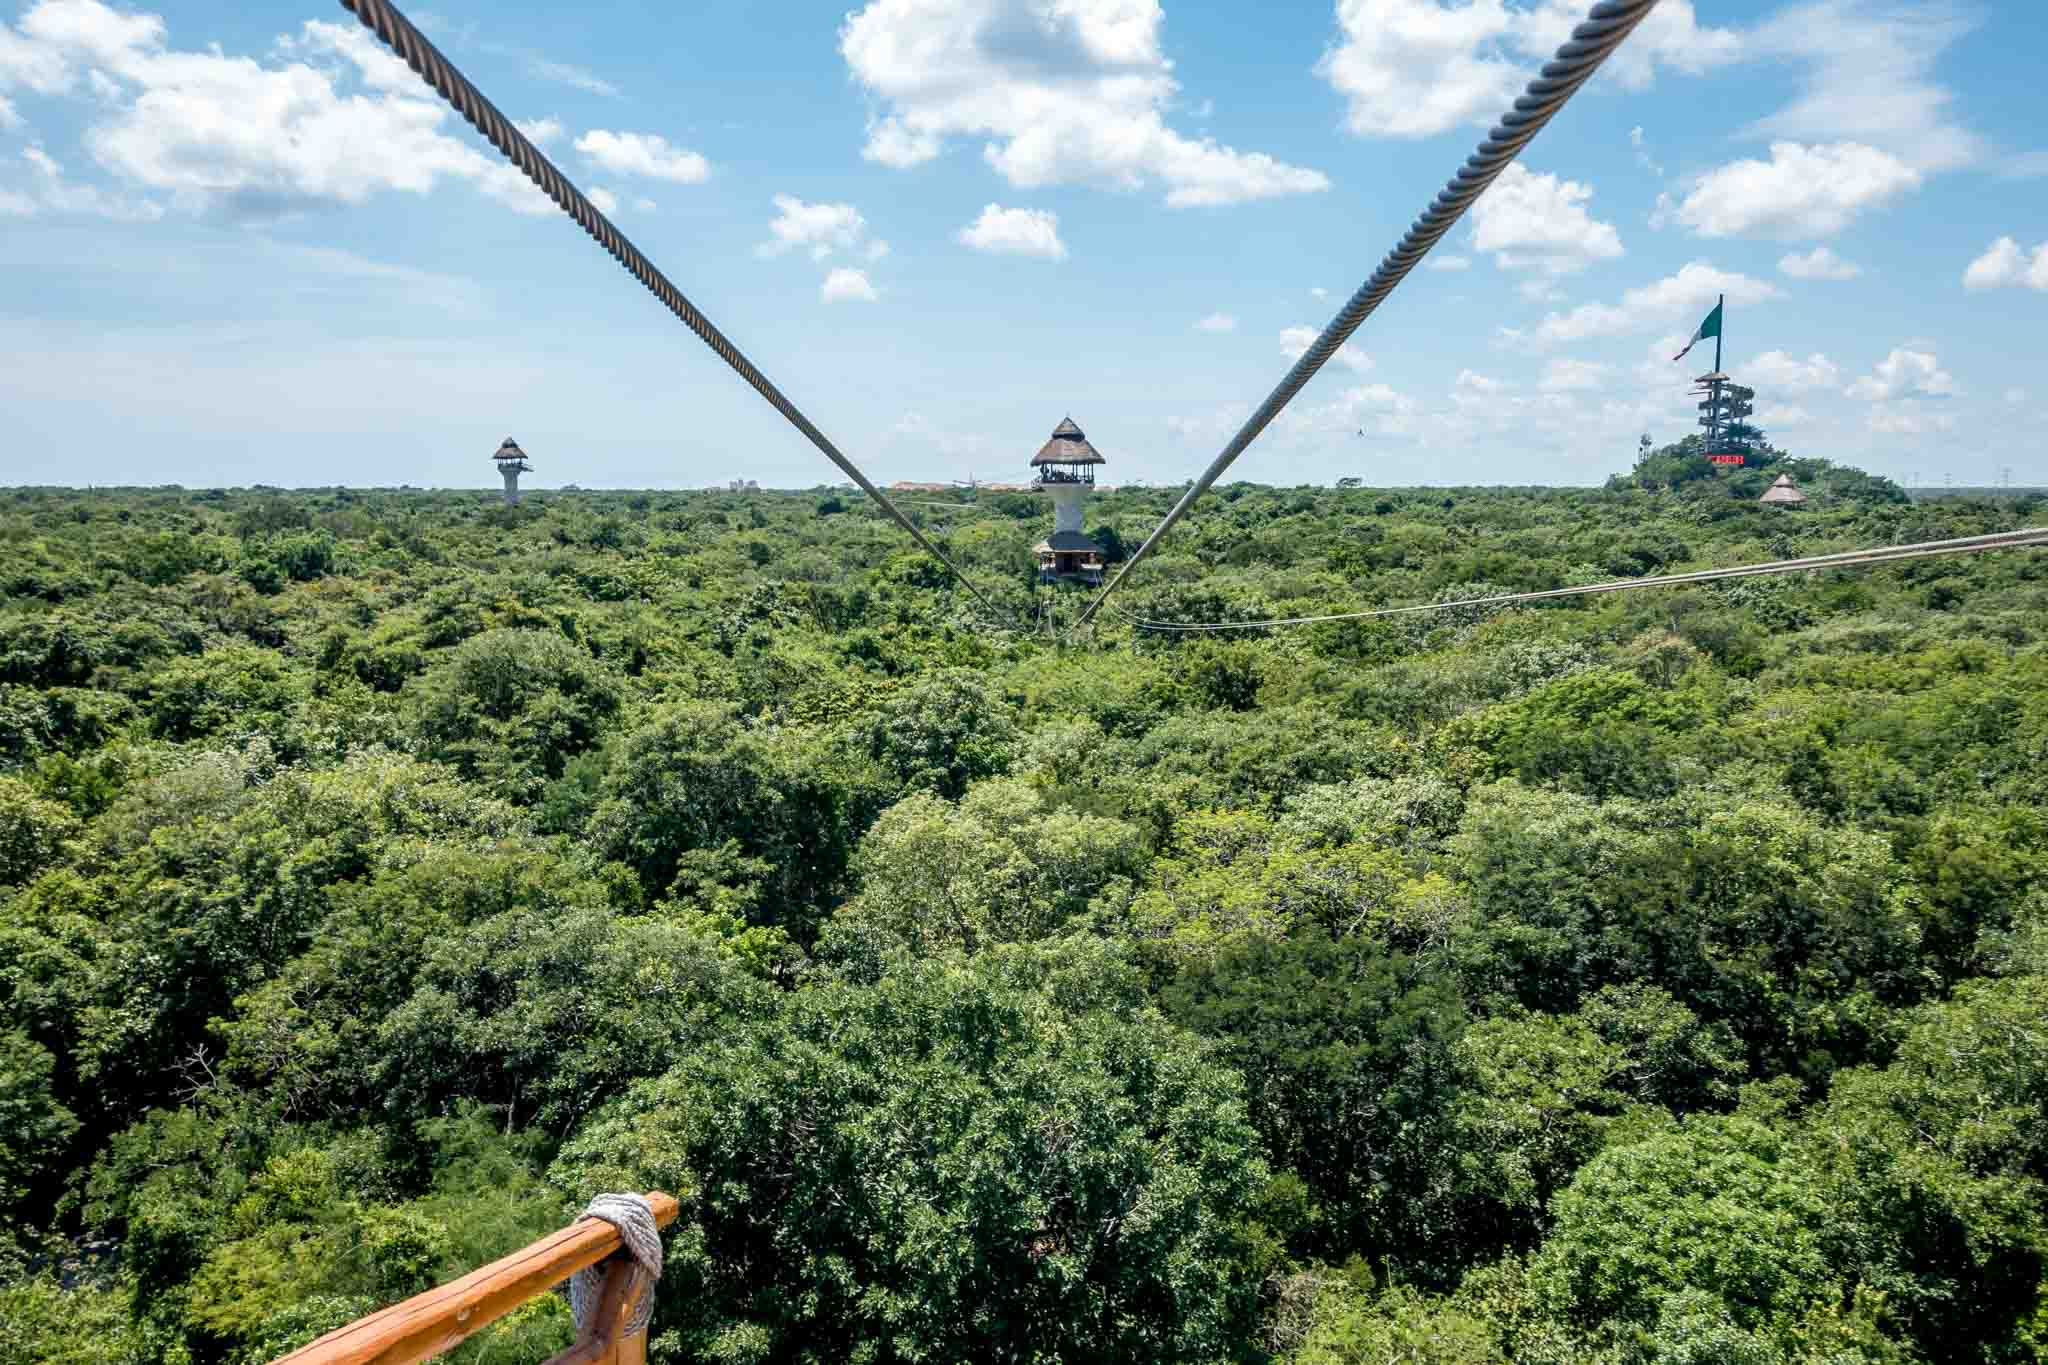 View from the zip lines at Xplor Riviera Maya (Parque Xplor) near Cancun, Mexico